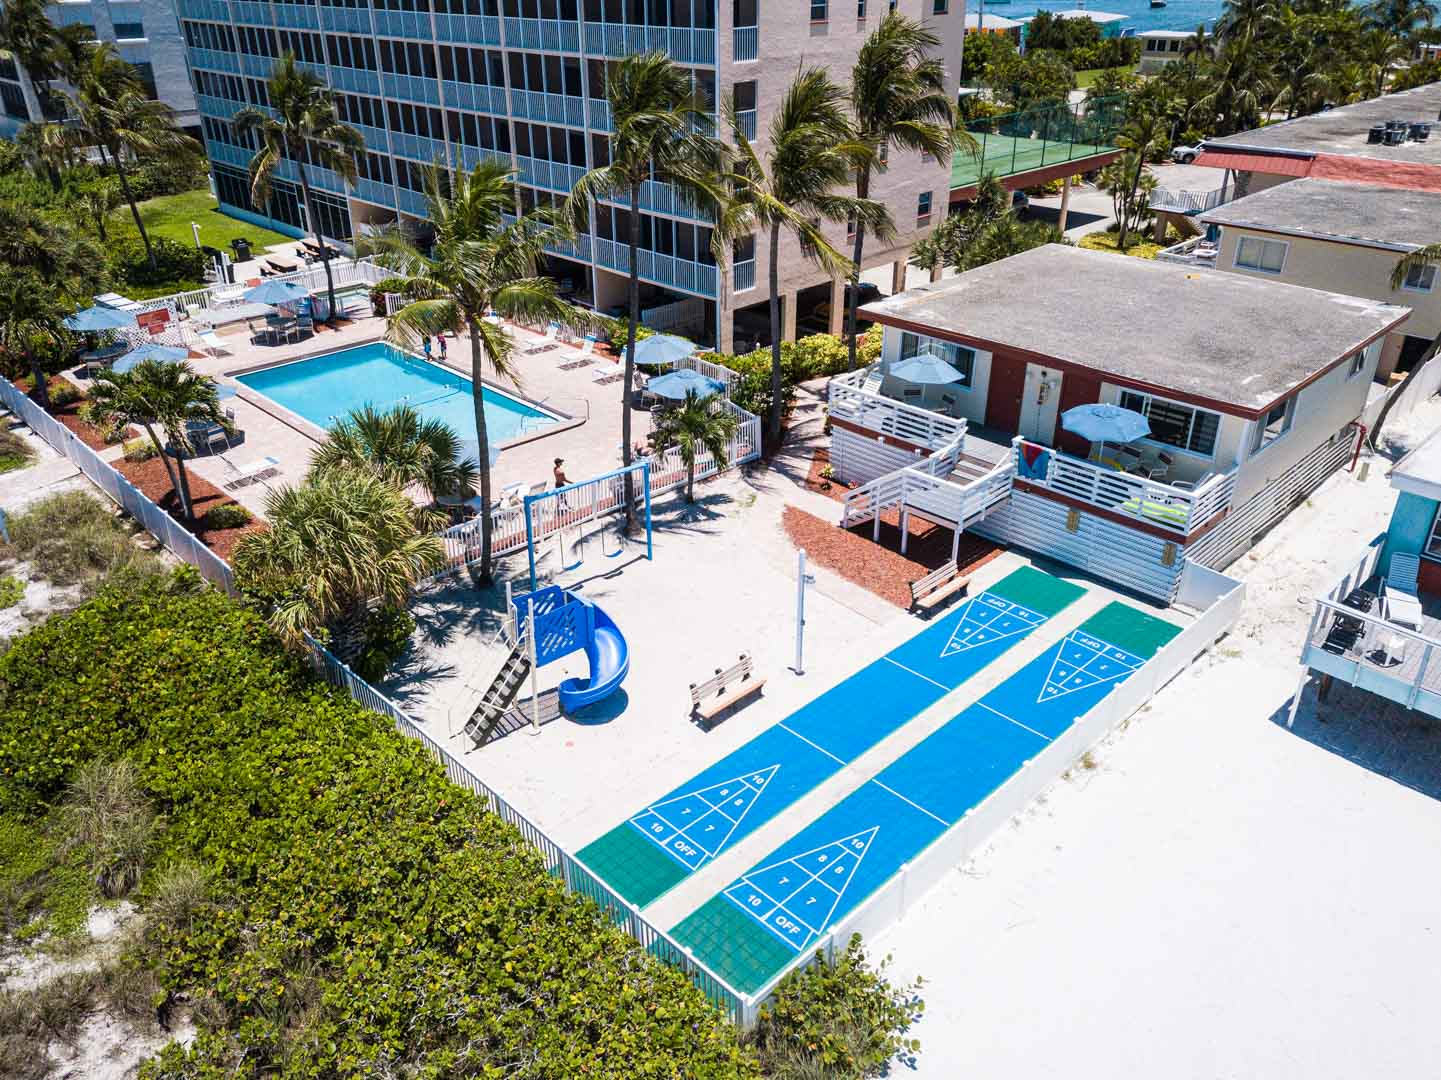 A view of the outdoor amenities at VRI's Windward Passage Resort in Fort Myers Beach, Florida.